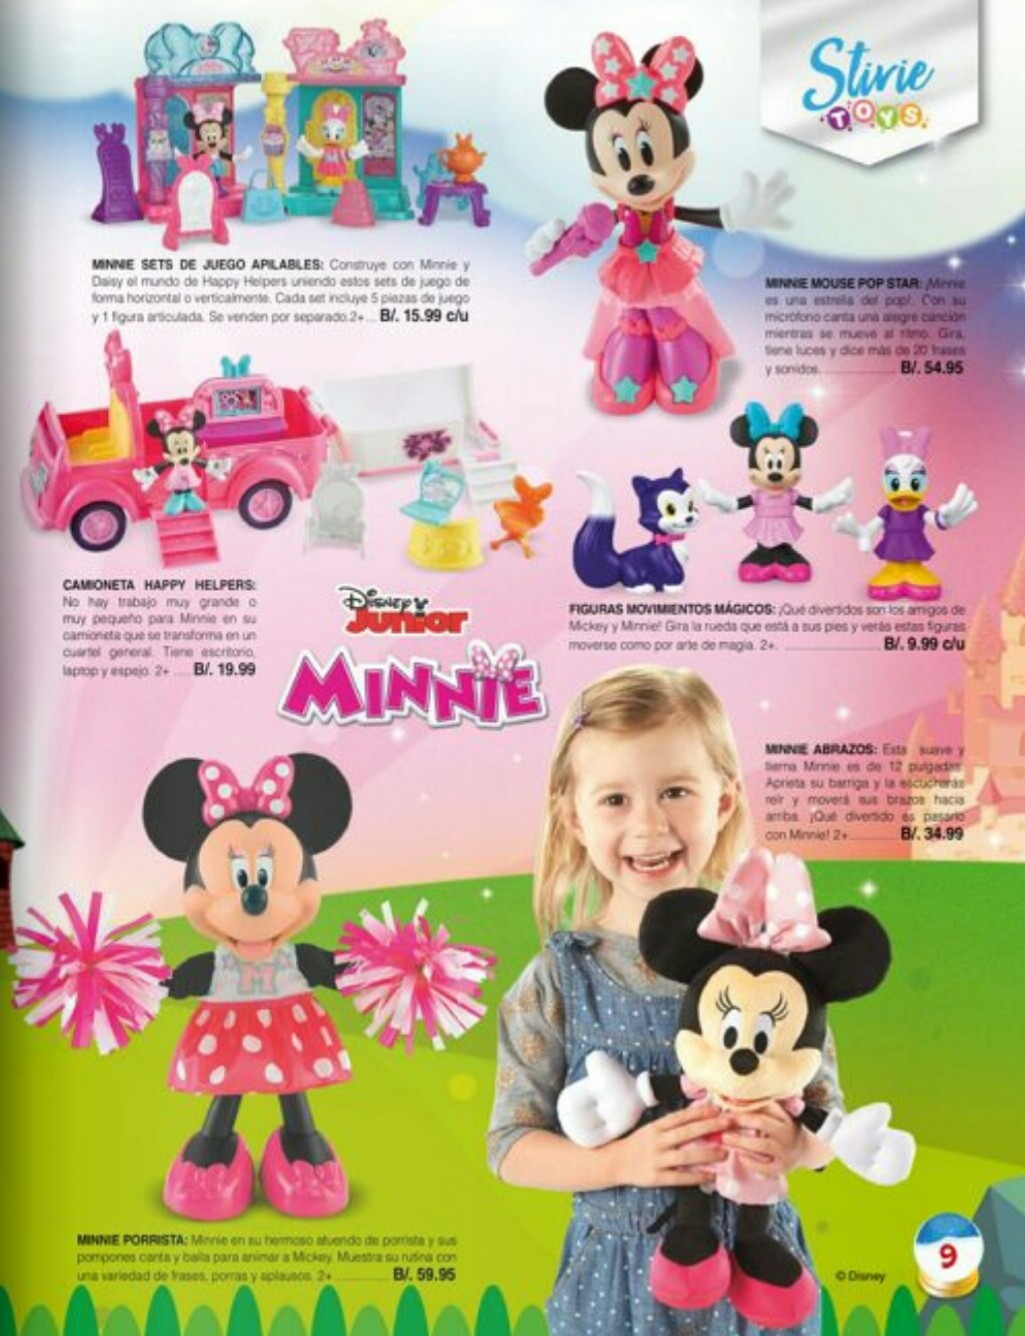 Catalogo juguetes Stivie toys 2018 p9